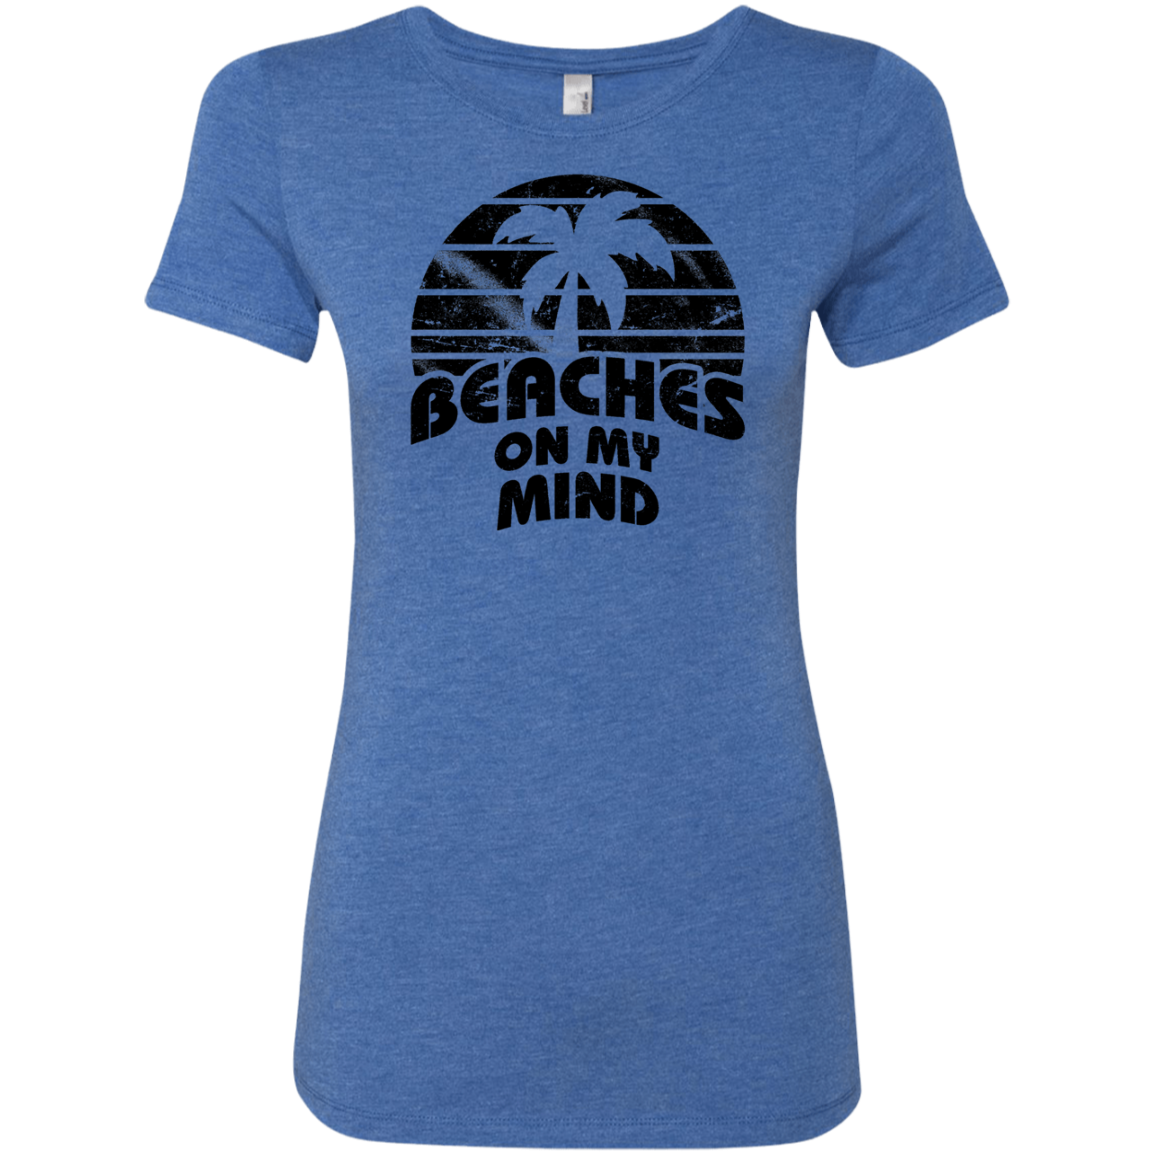 Beaches on my Mind Women's Classic Tee - Trendy Tees